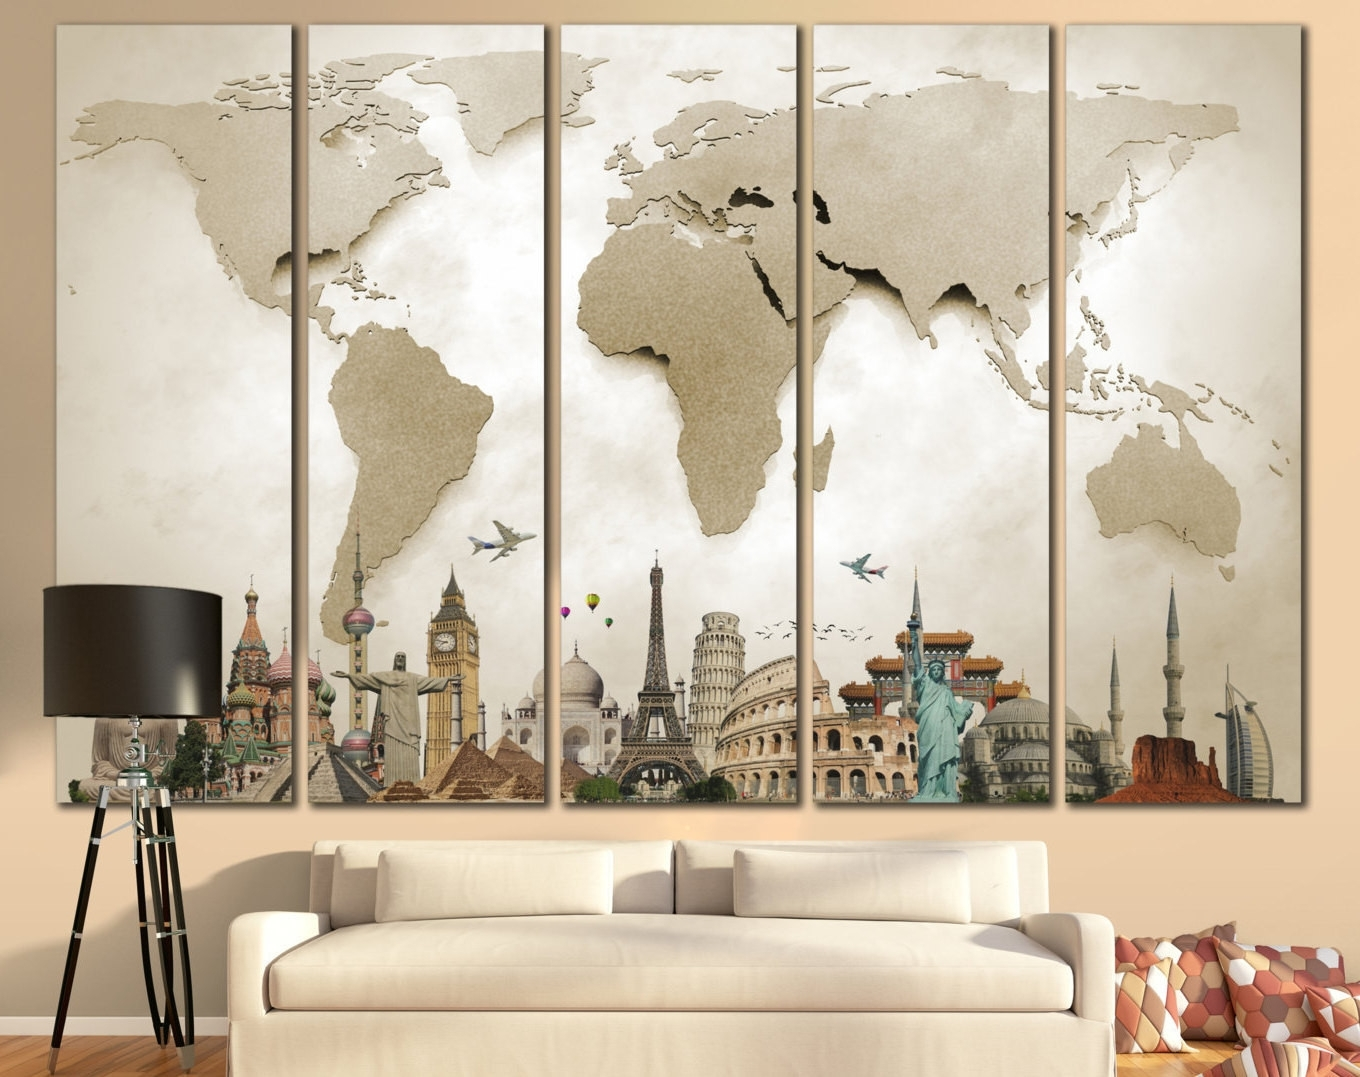 33 Awesome Decorative Wall Art Inspiration Of Ross Wall Art | Wall With Regard To Latest Ross Wall Art (Gallery 18 of 20)